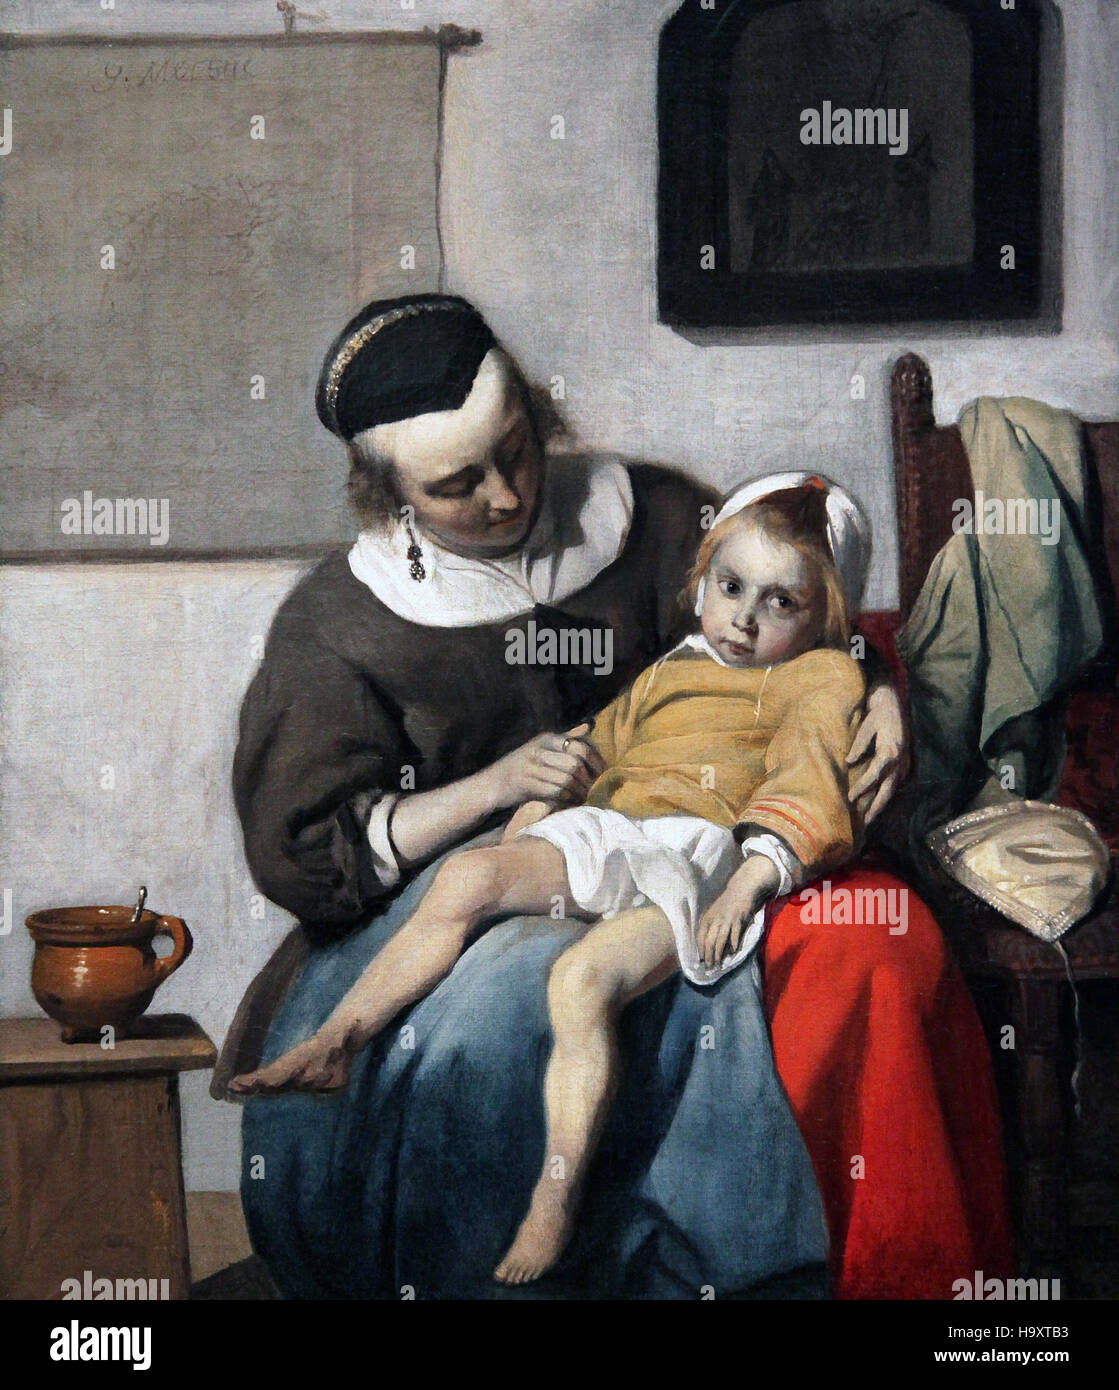 The sick child 1663 by Gabriel Metsu 1629-1667 the plague in amsterdam at that time - Stock Image